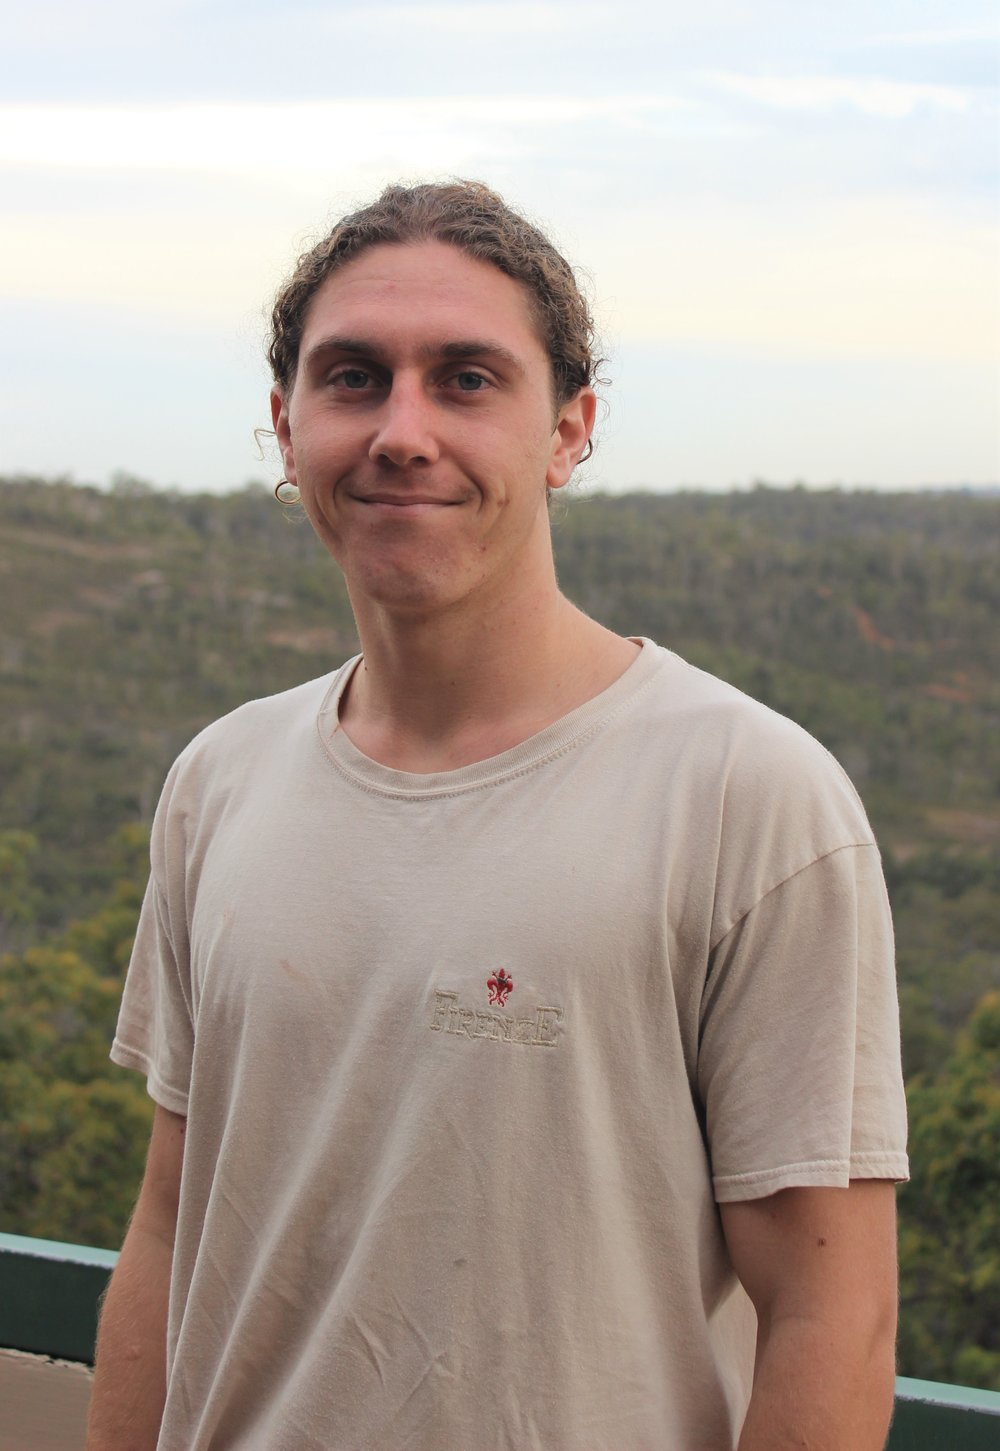 I'm an Electrical Engineering student who loves to get outdoors. I grew up in Esperance and went to Hale. I enjoy surfing, tennis and having cuppas with my mates. In 2017 I went on exchange to Sweden where I fell in love with the beautiful landscape, friendly people and engaging culture. I'd love to go back one day.